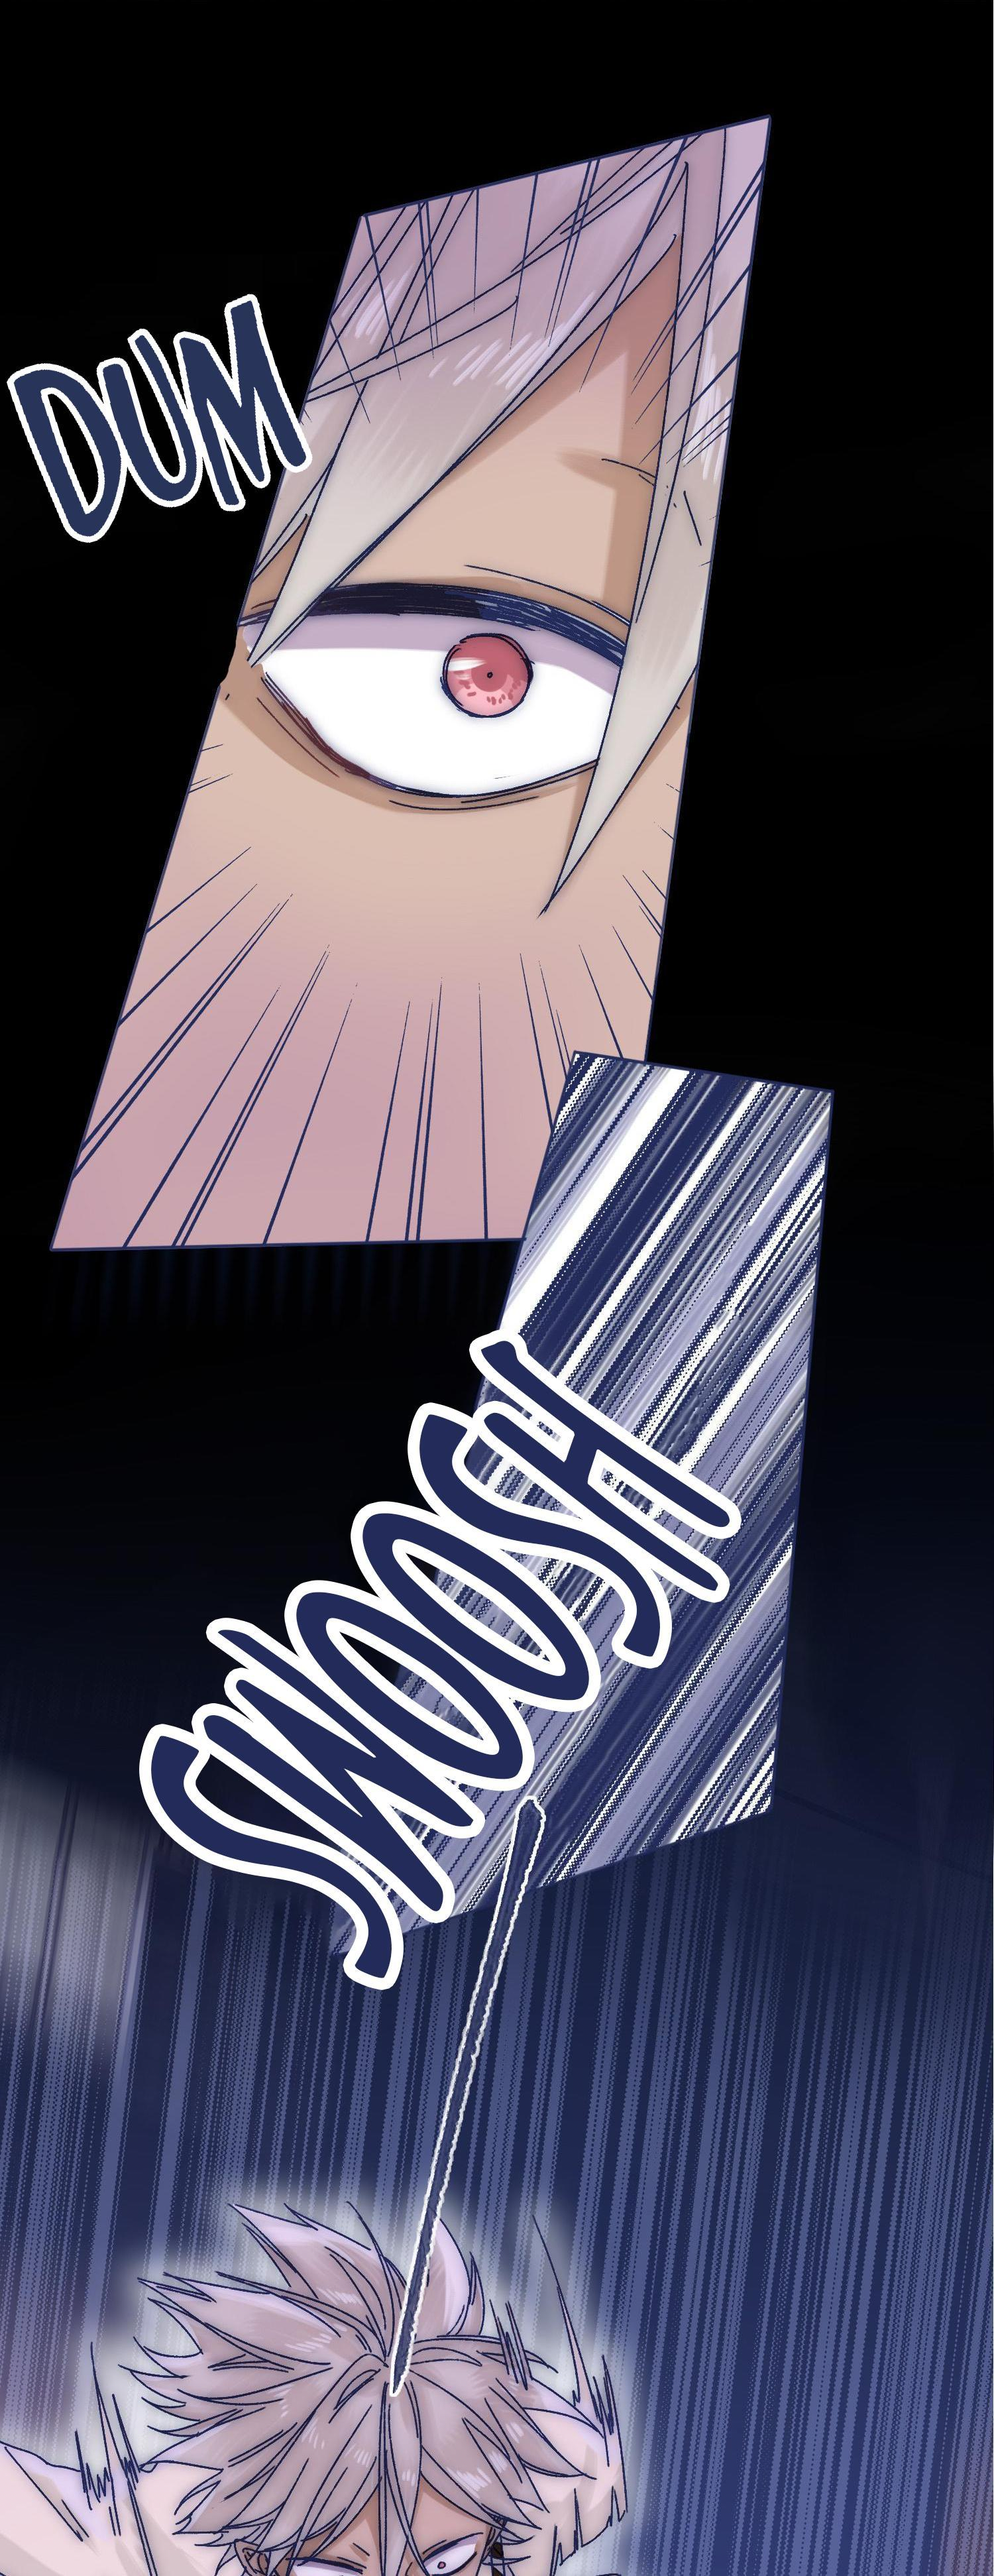 Offering My Neck To You Chapter 35: Your Child Is In Danger page 18 - Mangakakalots.com